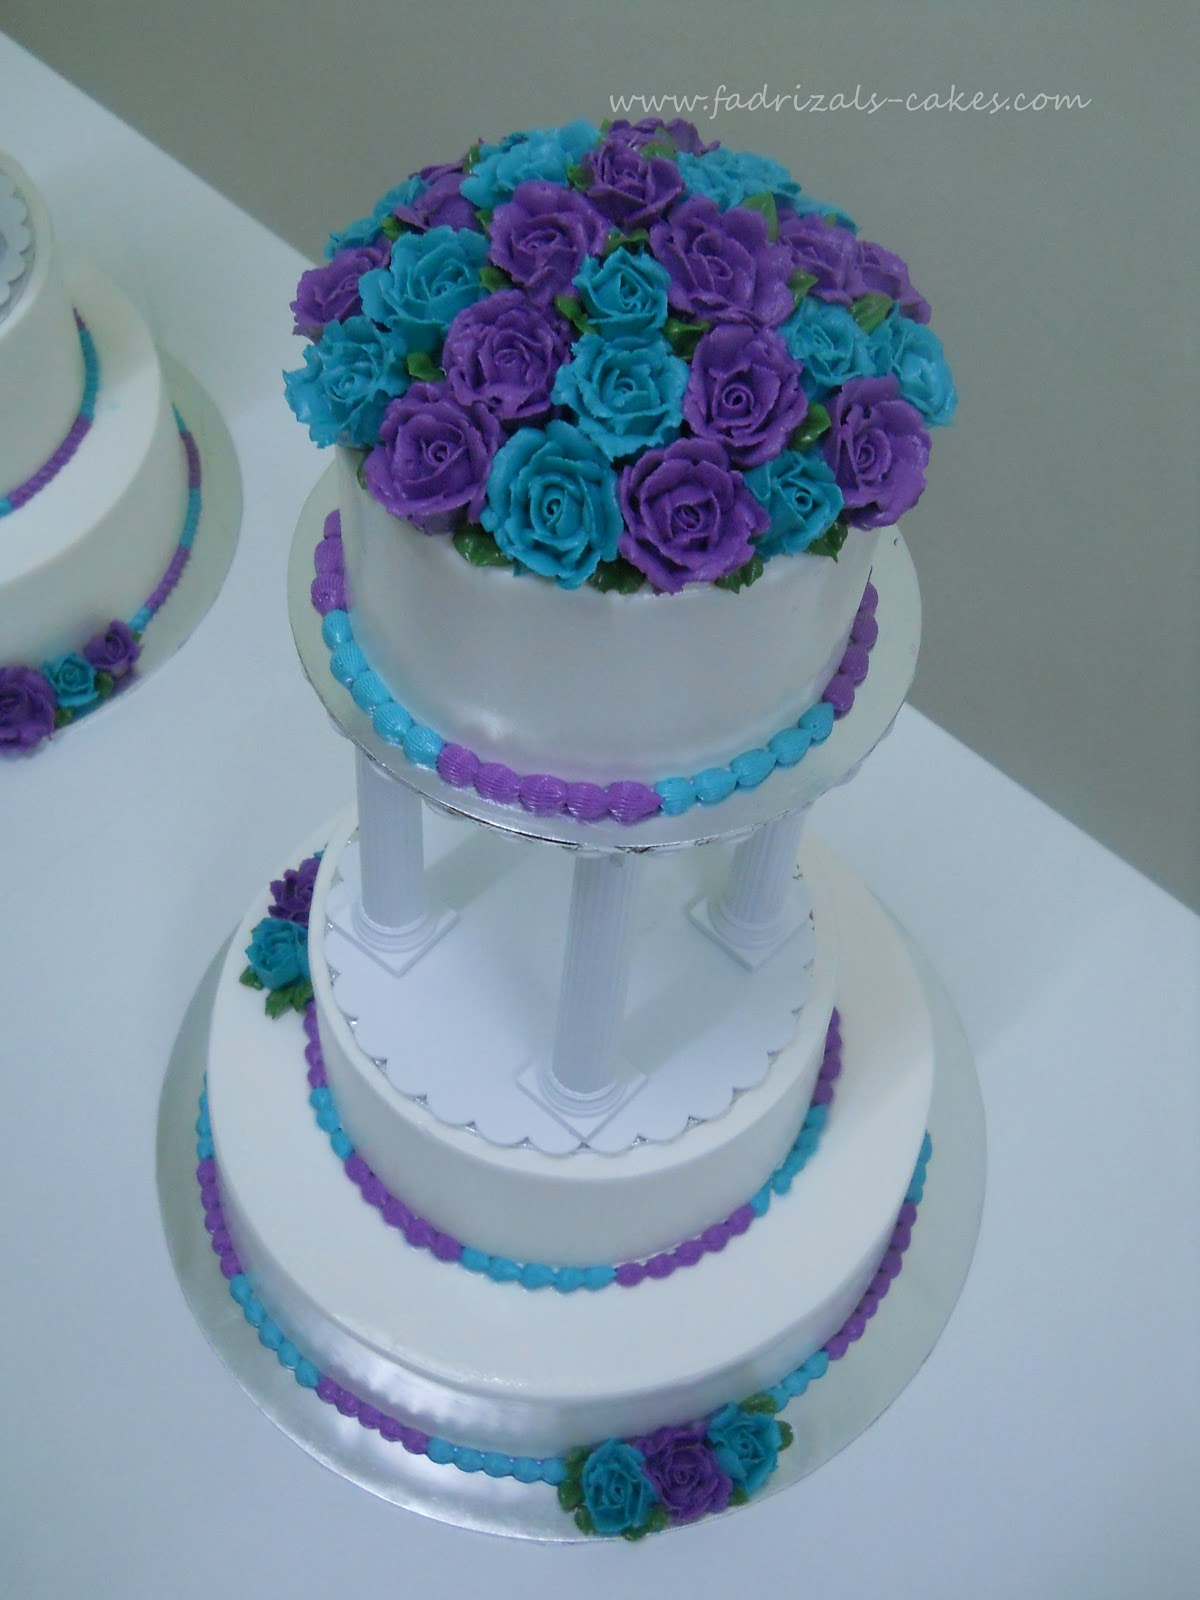 FadRizals Cakes Class 3 Tier Wedding Cake[Stacked